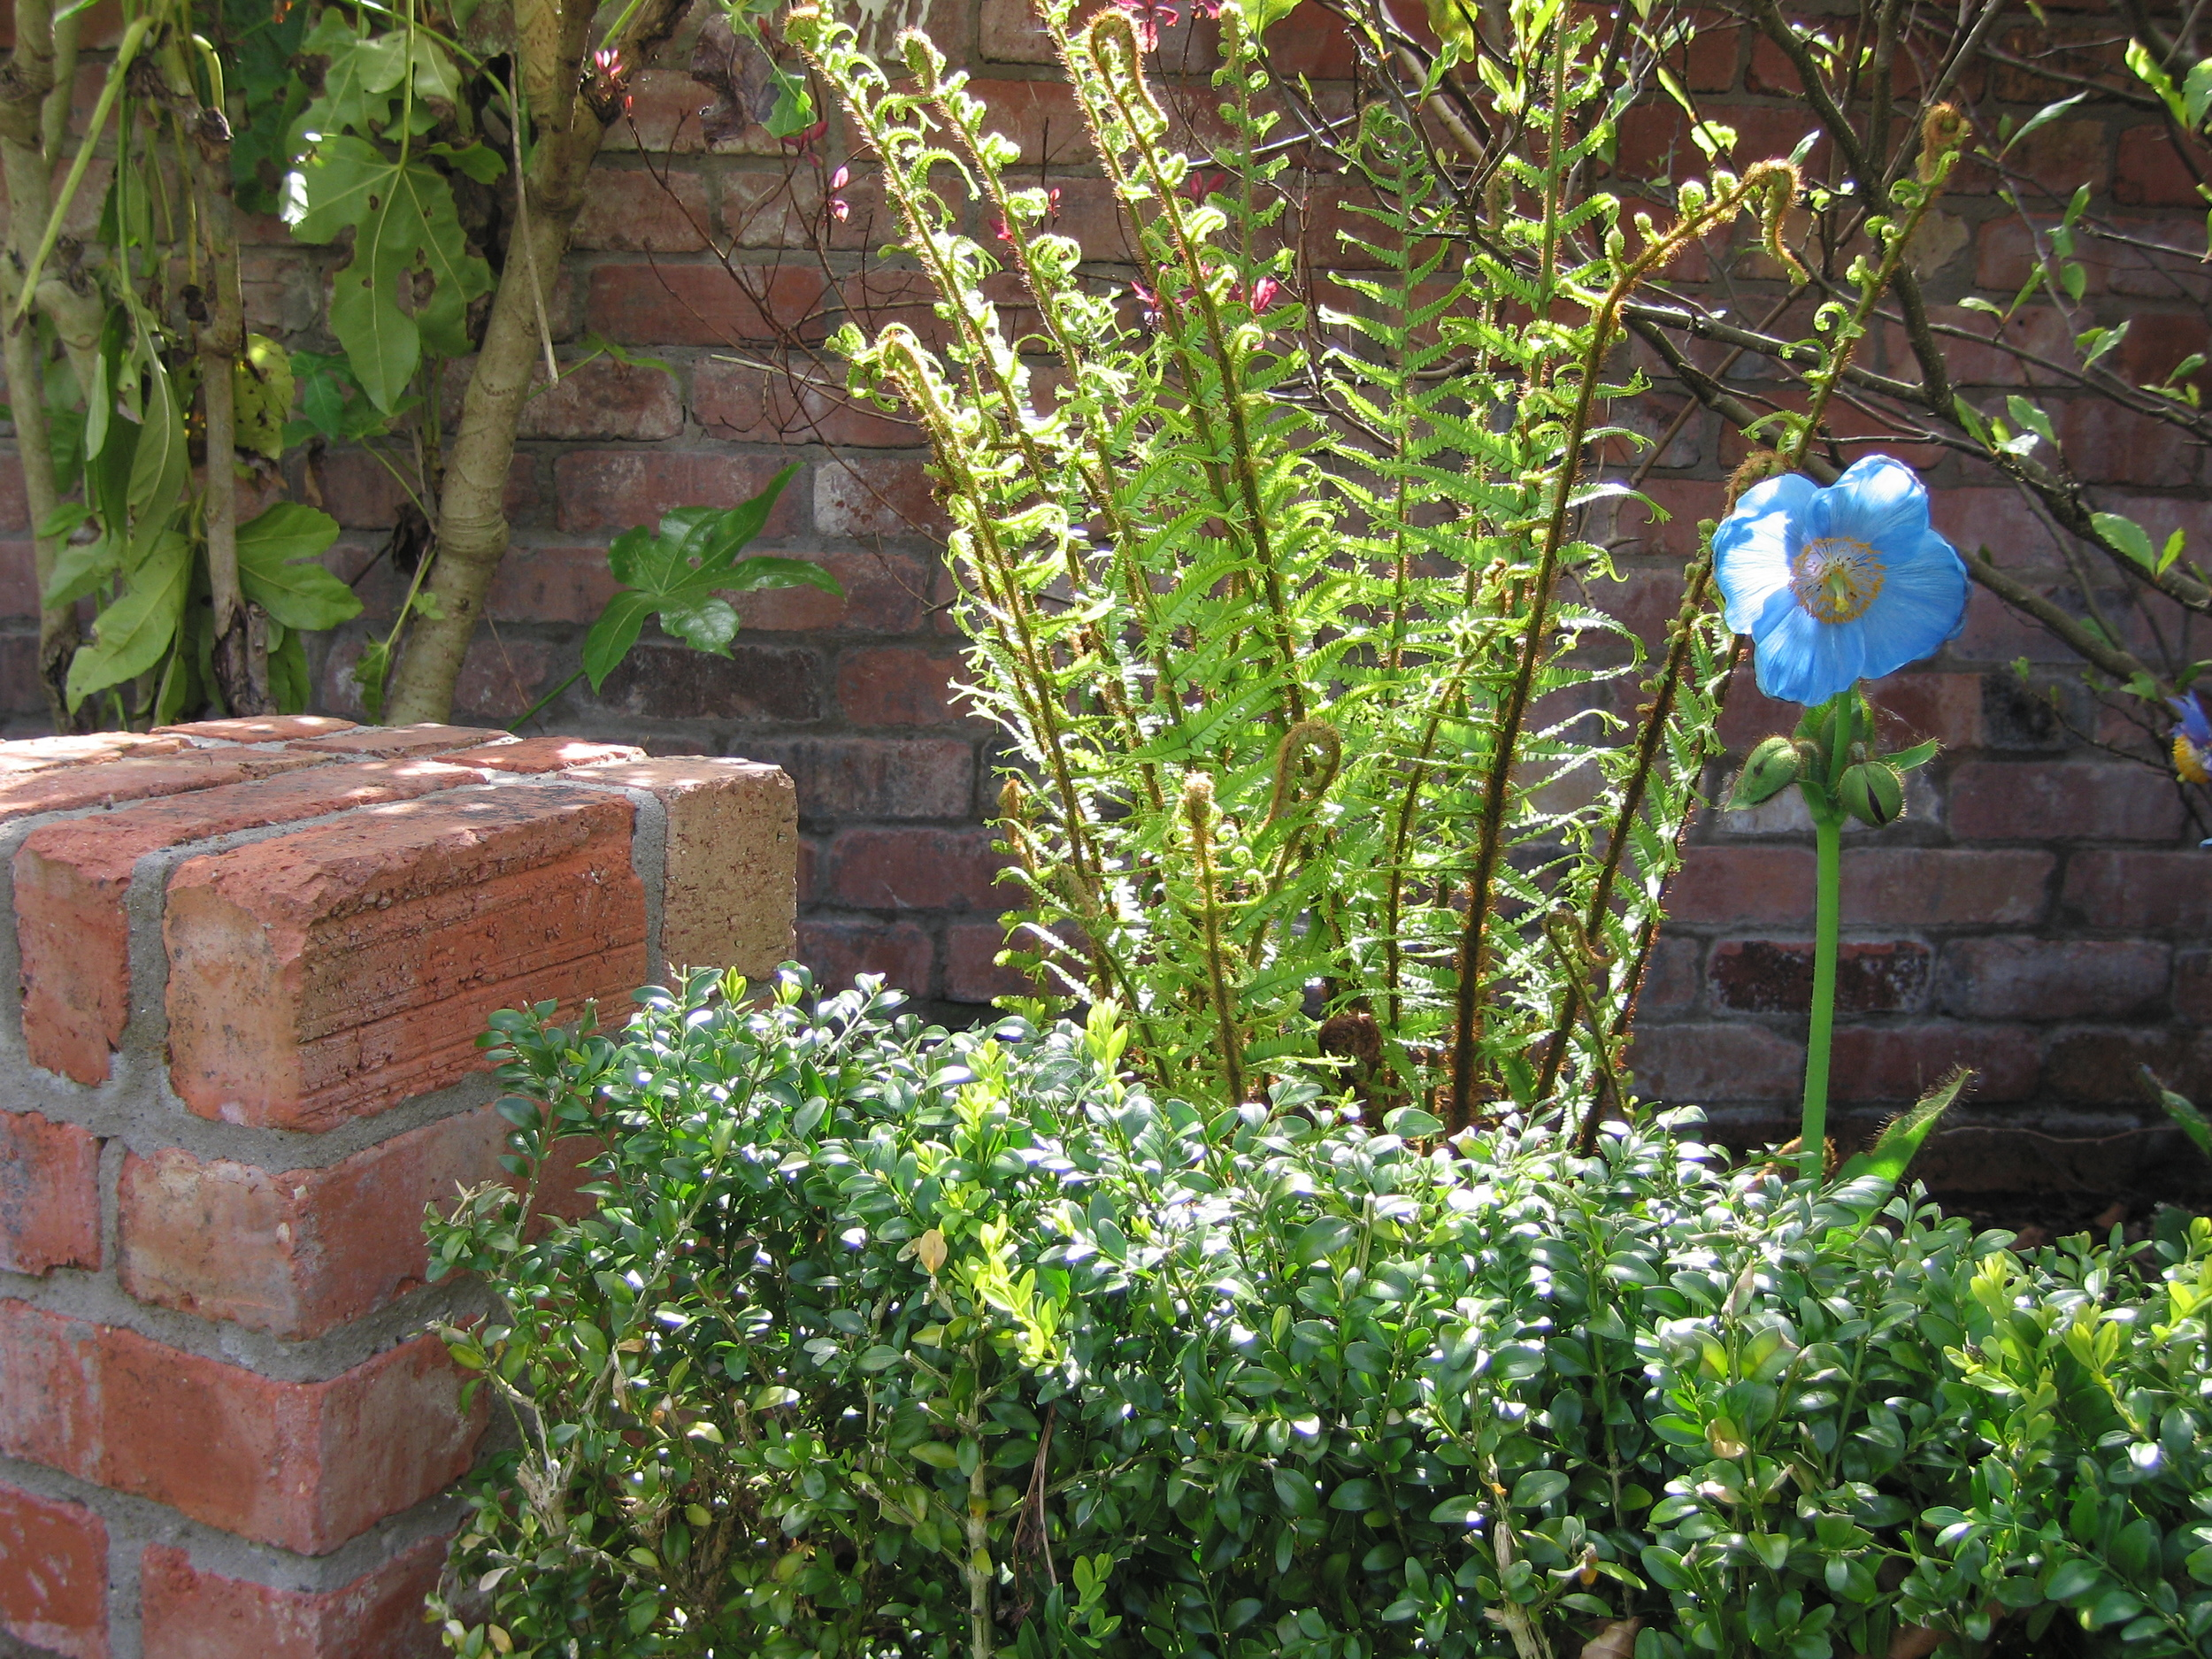 meconopsis and fern garden design belfast irishgardenplantsociety